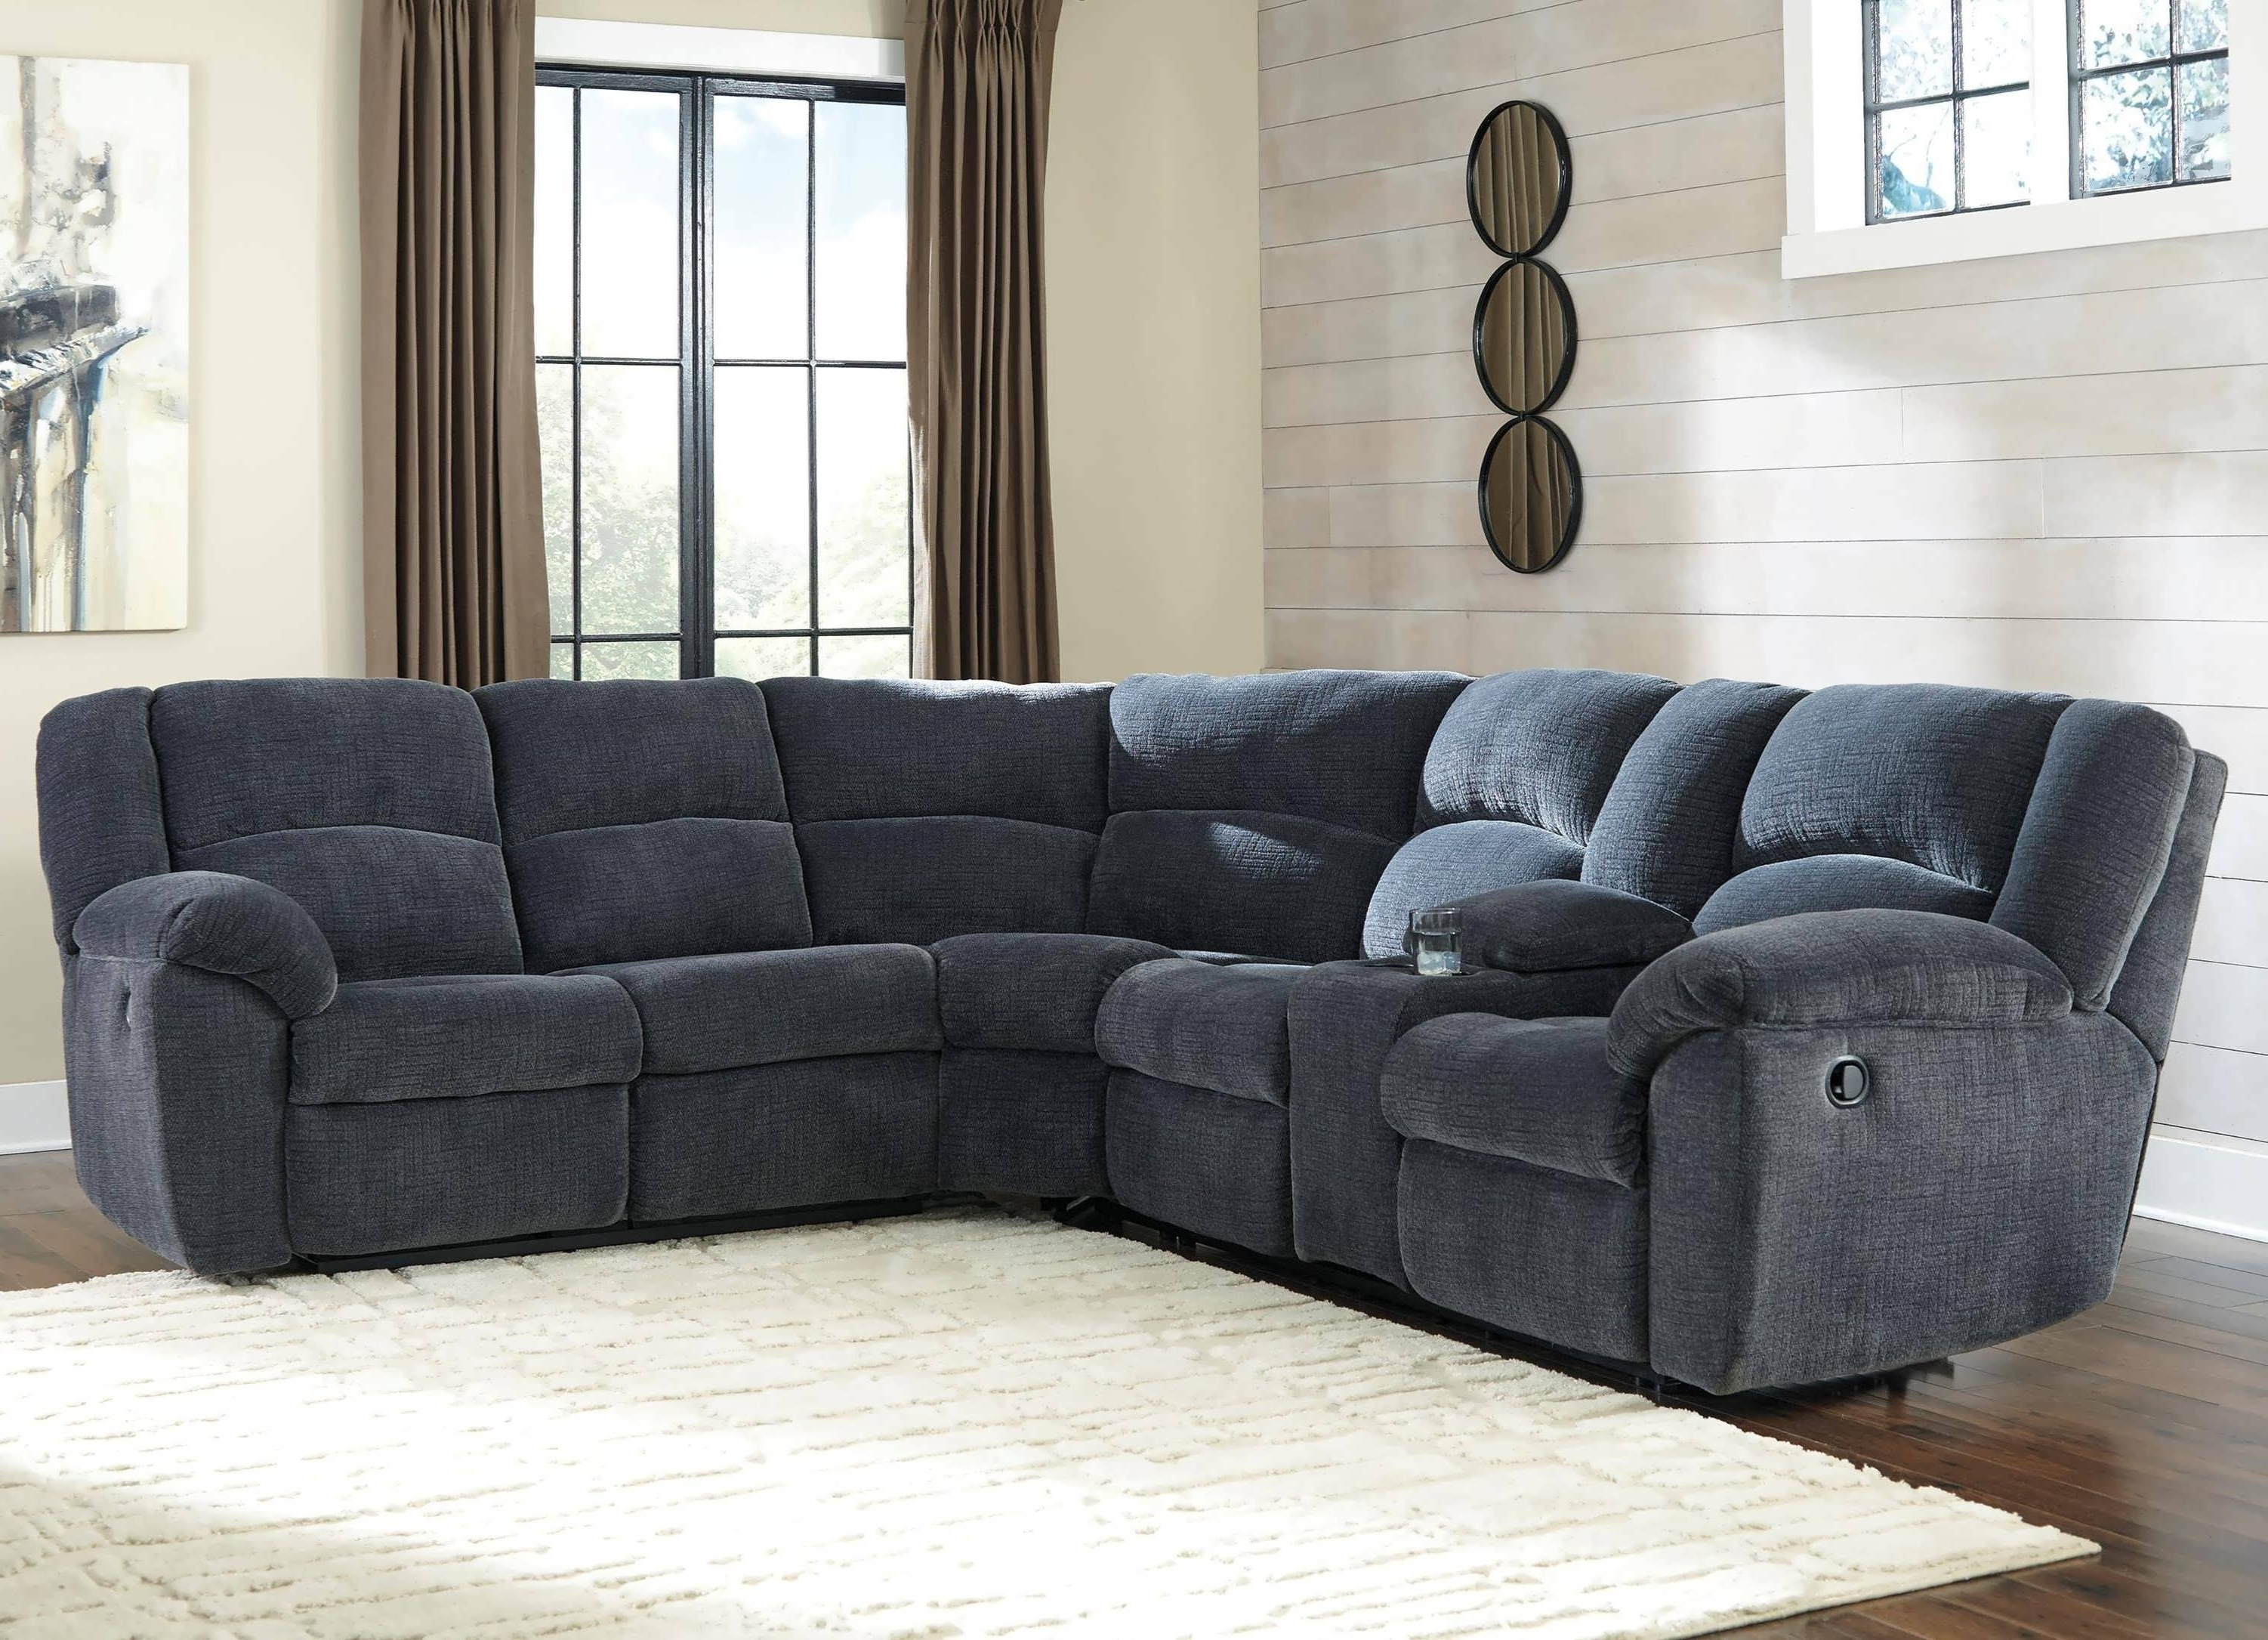 Most Recent Sofa : Pit Sectional Sectional Sofas With Recliners Grey Leather Inside Chaise Recliners (View 10 of 15)